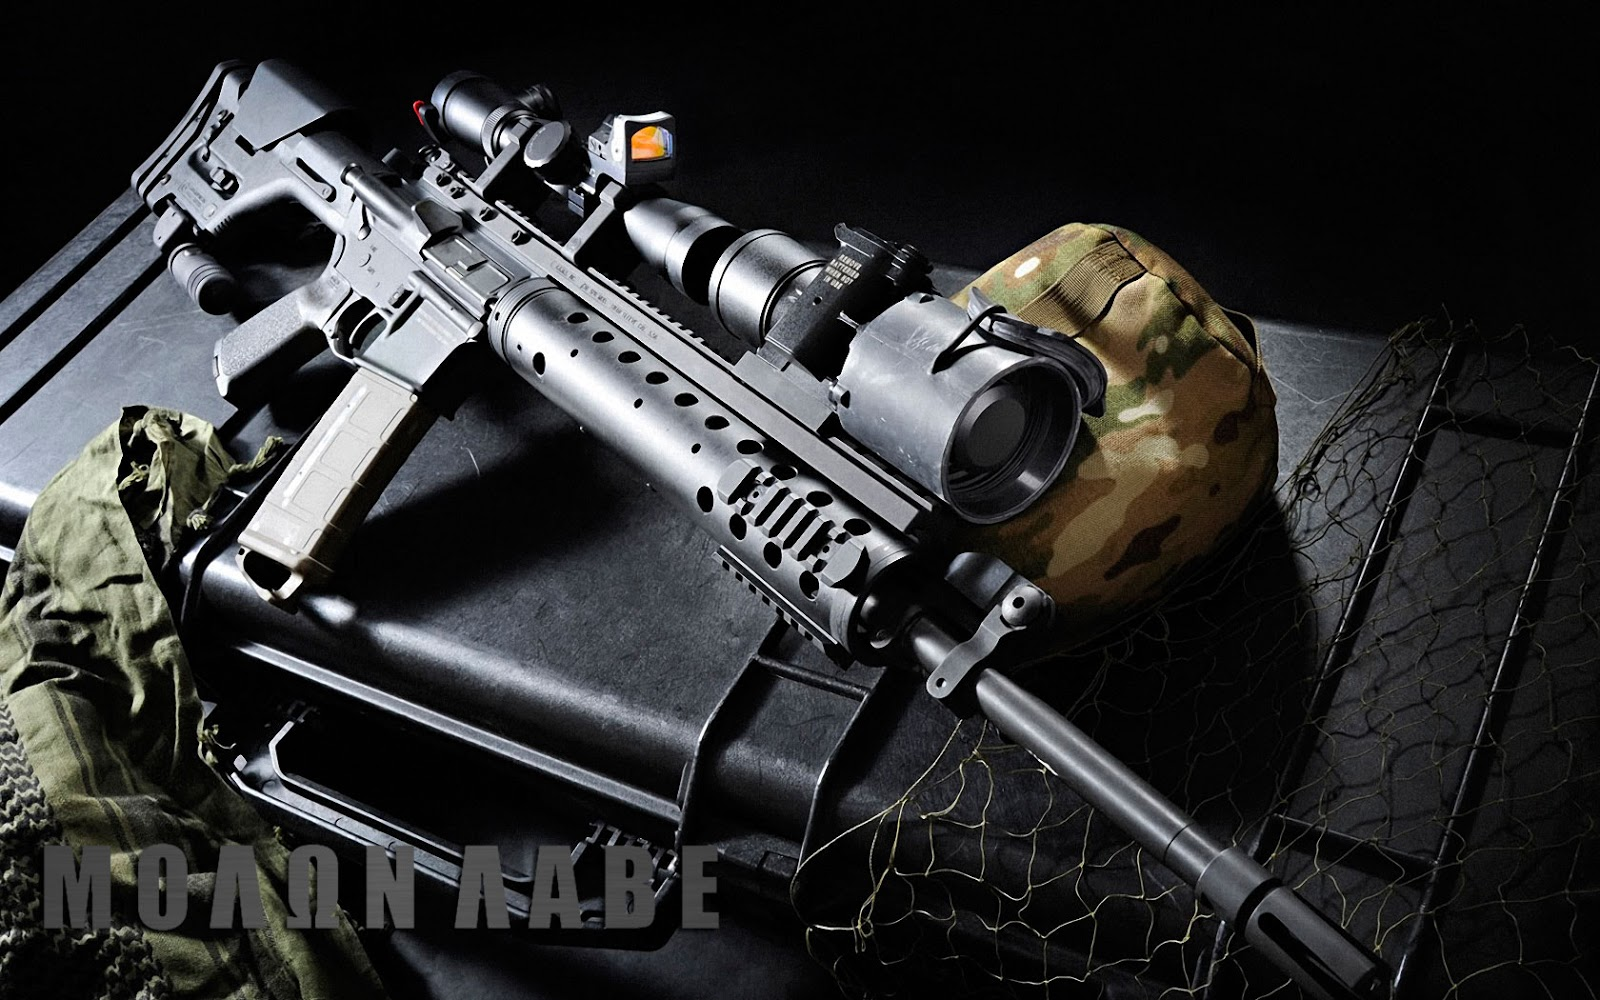 http://4.bp.blogspot.com/-Vc_M0anL3Nc/UHnKVdv_e0I/AAAAAAAAF6s/OxNNdOKbZLg/s1600/guns_weapons_rifles_desktop_1680x1050_hd-wallpaper-452214.jpeg